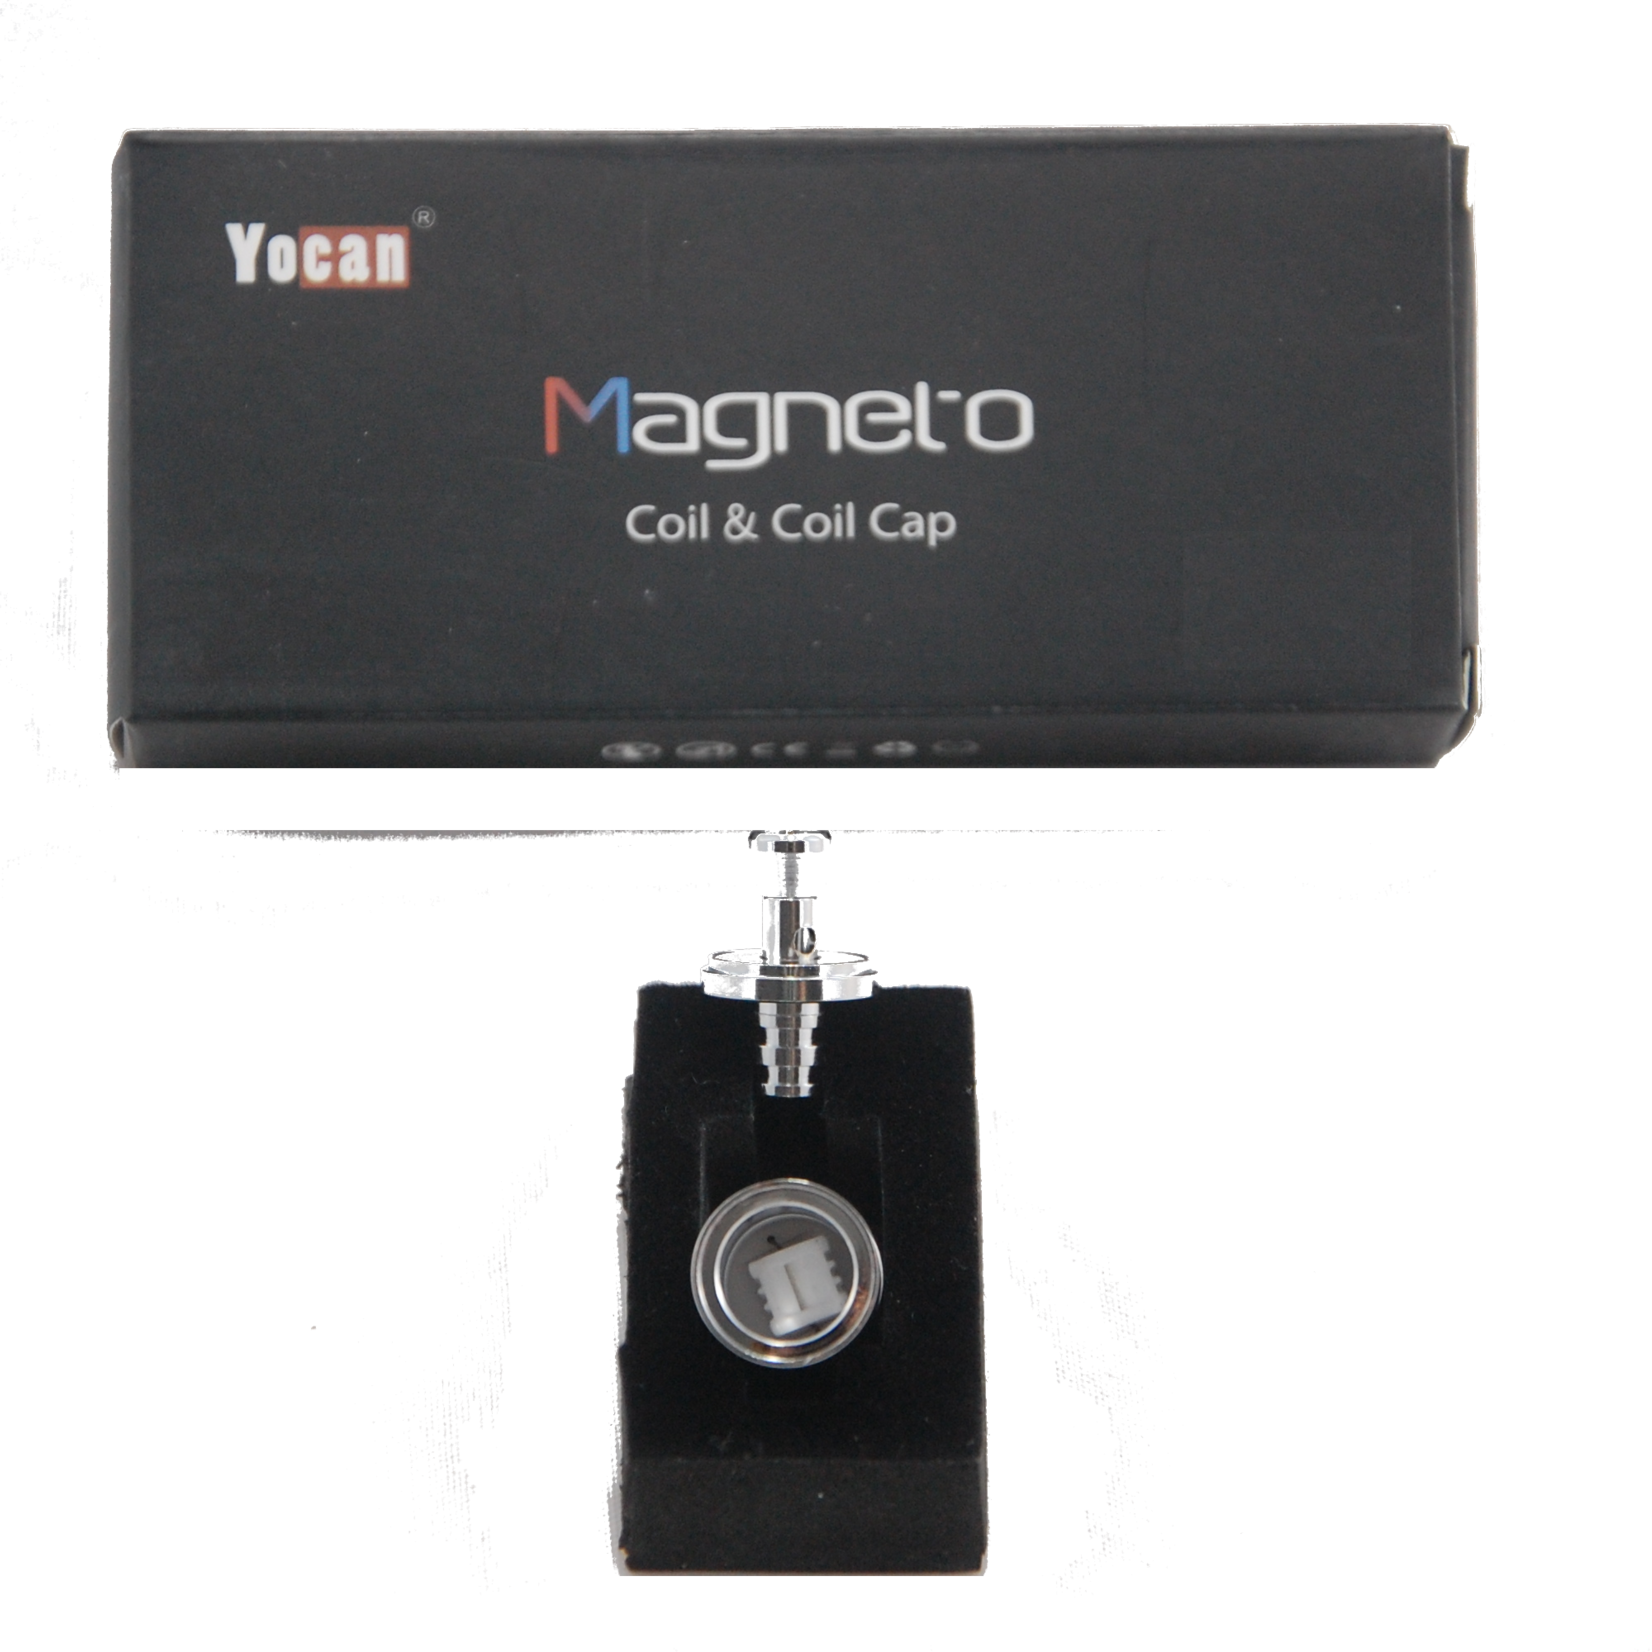 Yocan Magneto Coil and Cap